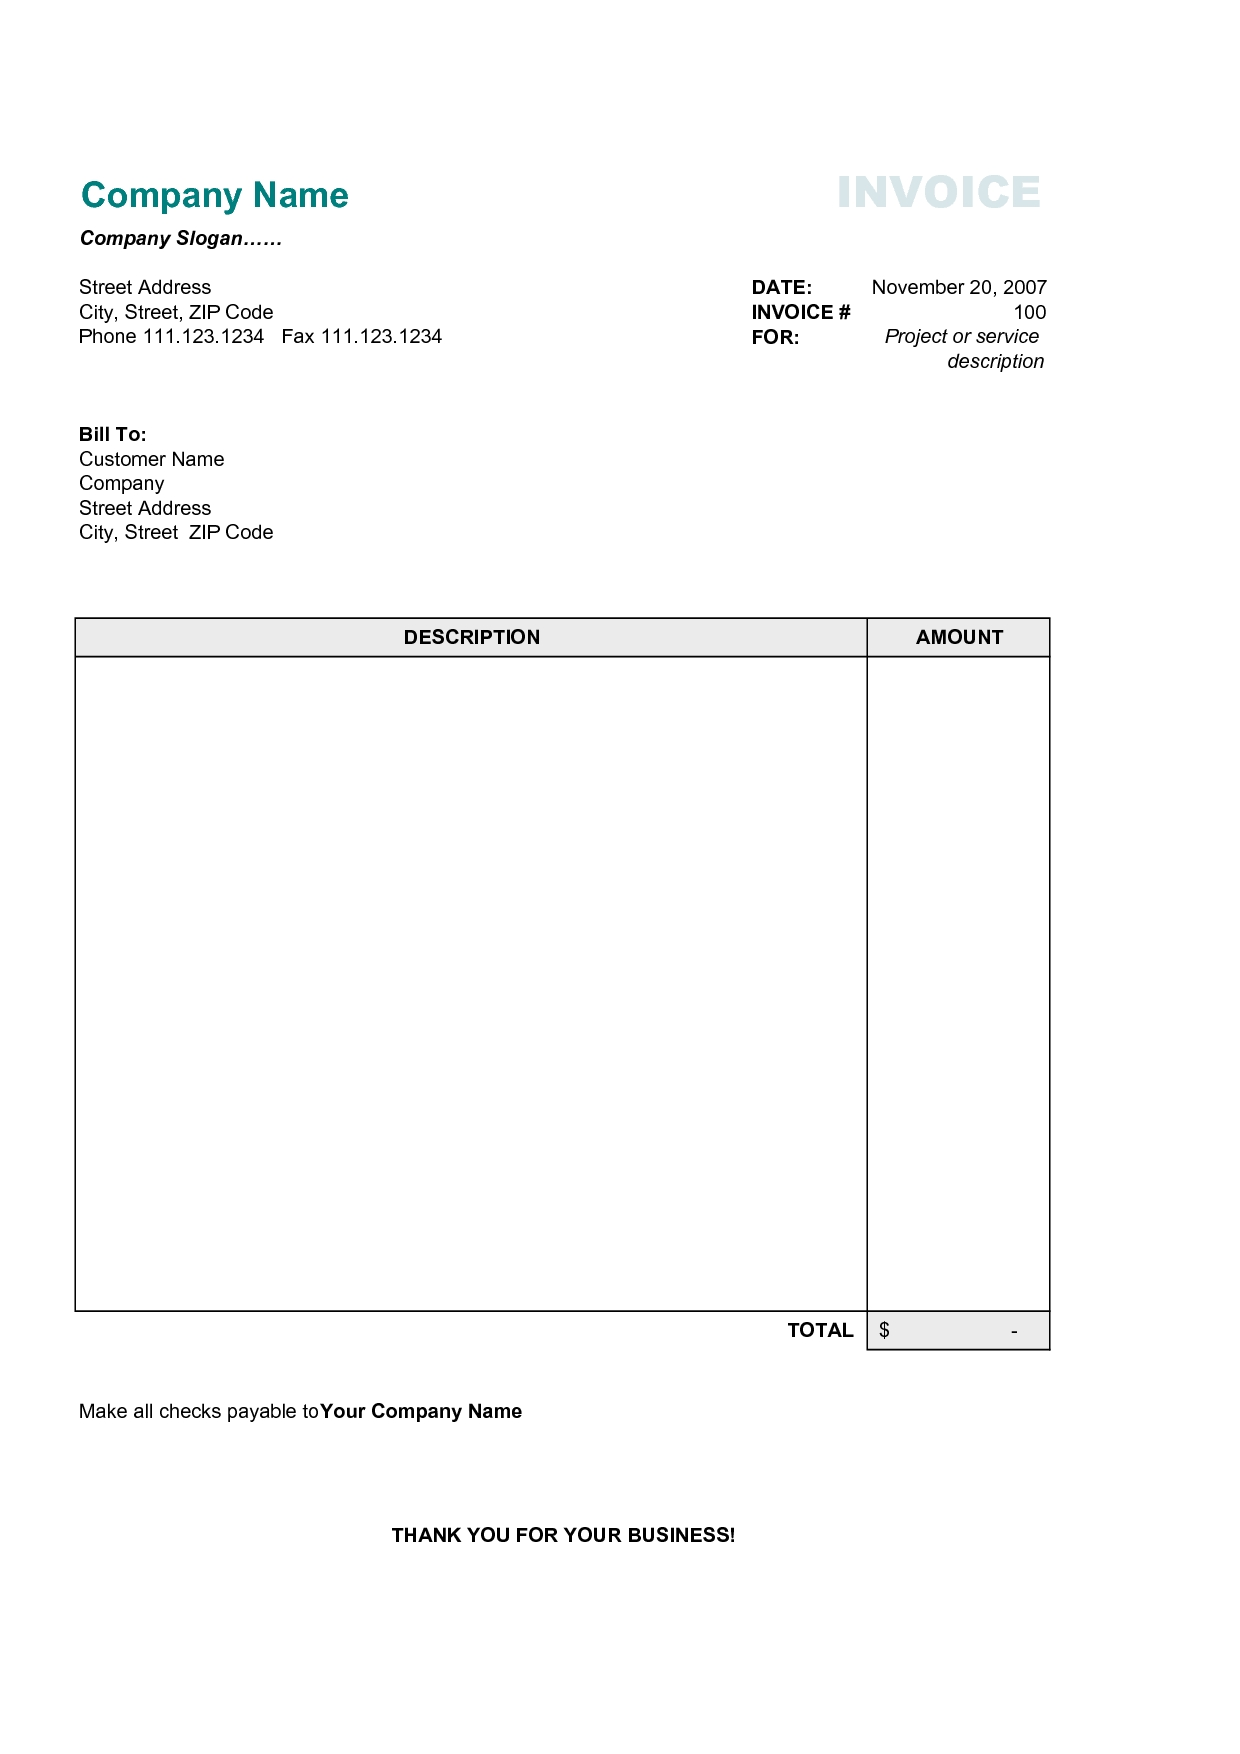 simple invoice format download – notators, Invoice templates